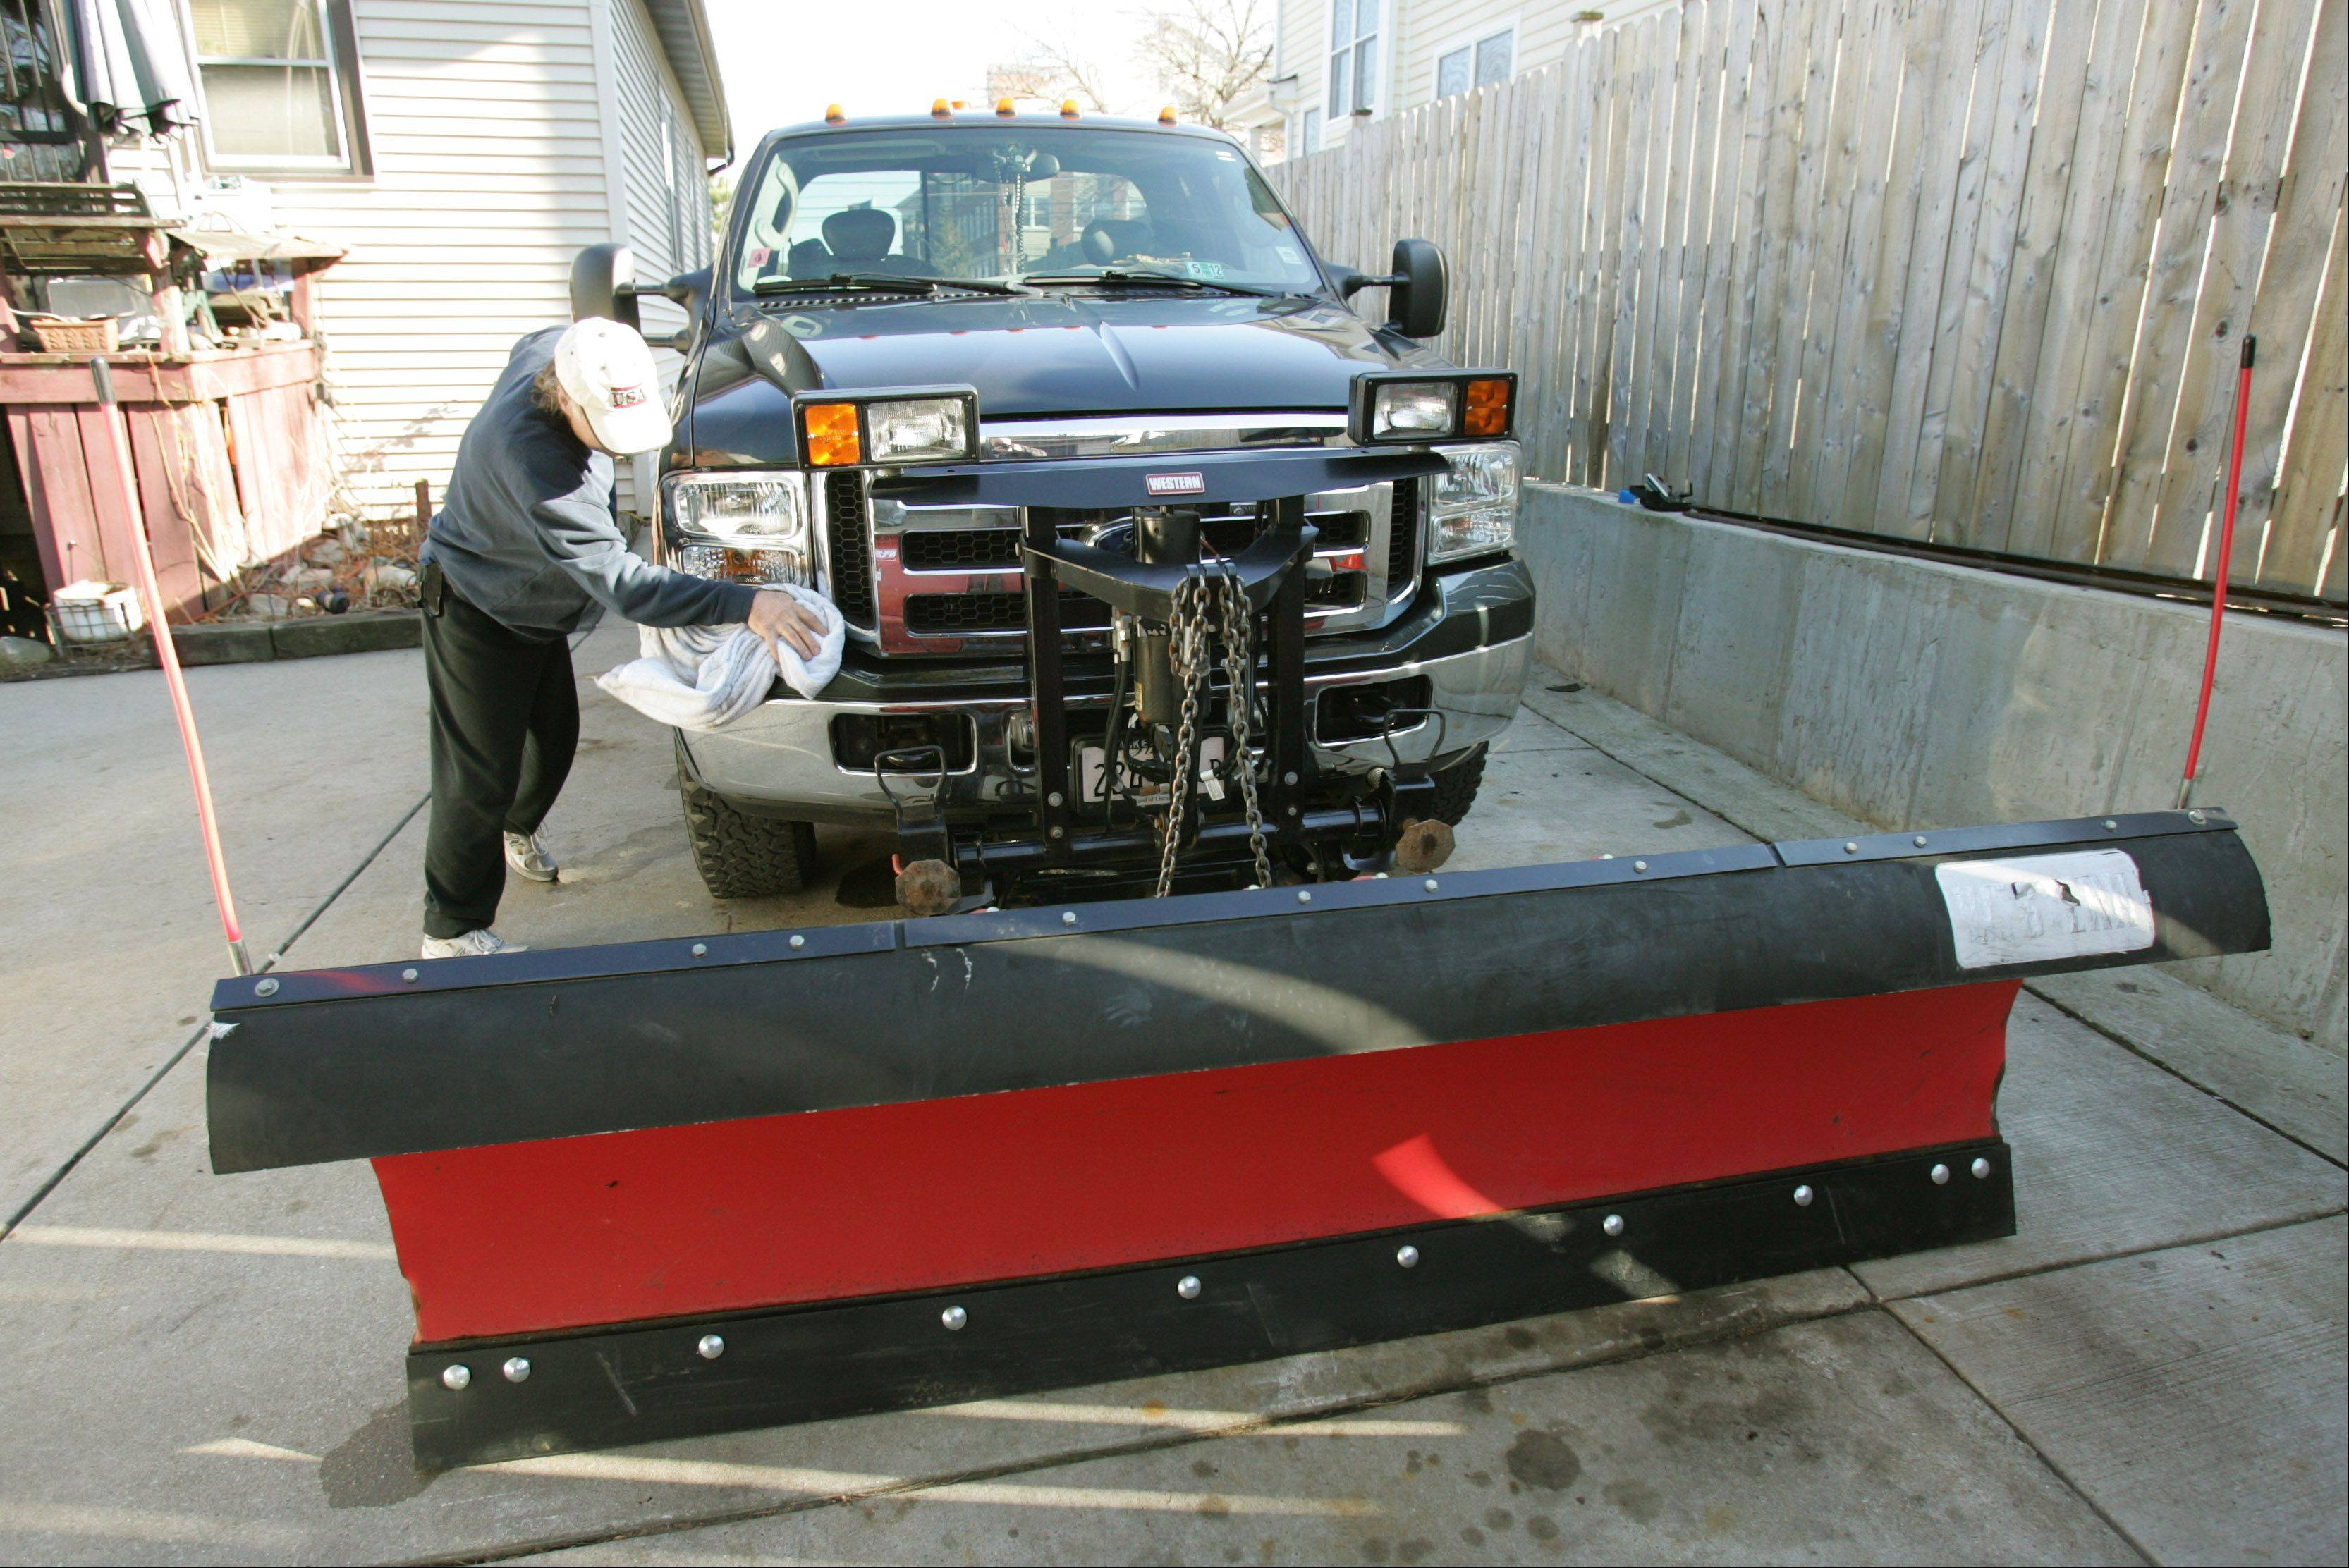 Cold weather-dependent businessman Bob Sadler of Glen Ellyn can't wait to rejuvenate his snow removal business, which has ailed due to warm winter weather. Above, Sadler polishes his plow.